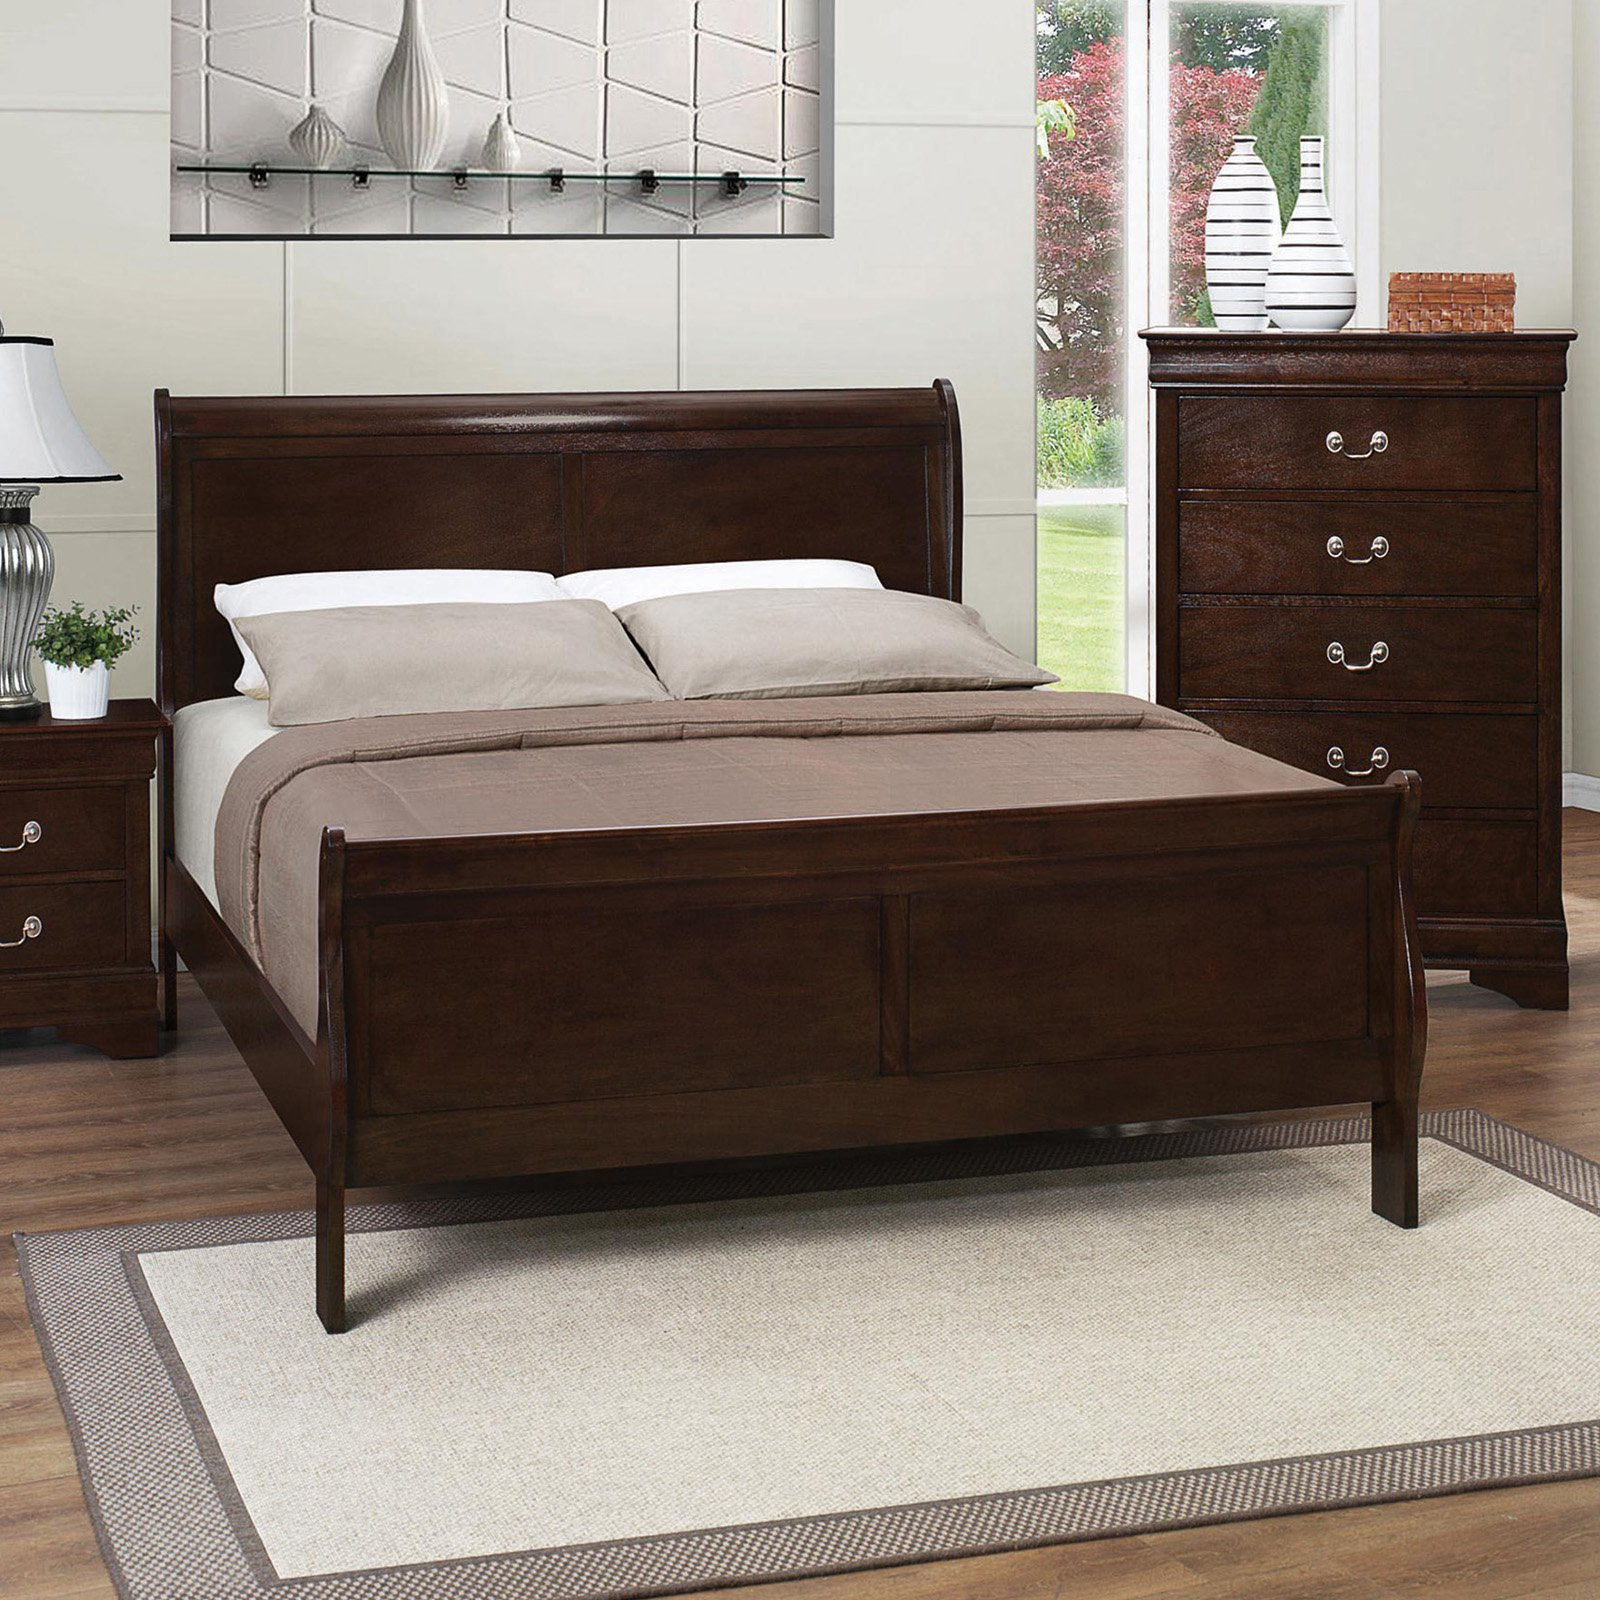 Coaster Furniture Louis Philippe I Wood Sleigh Bed by